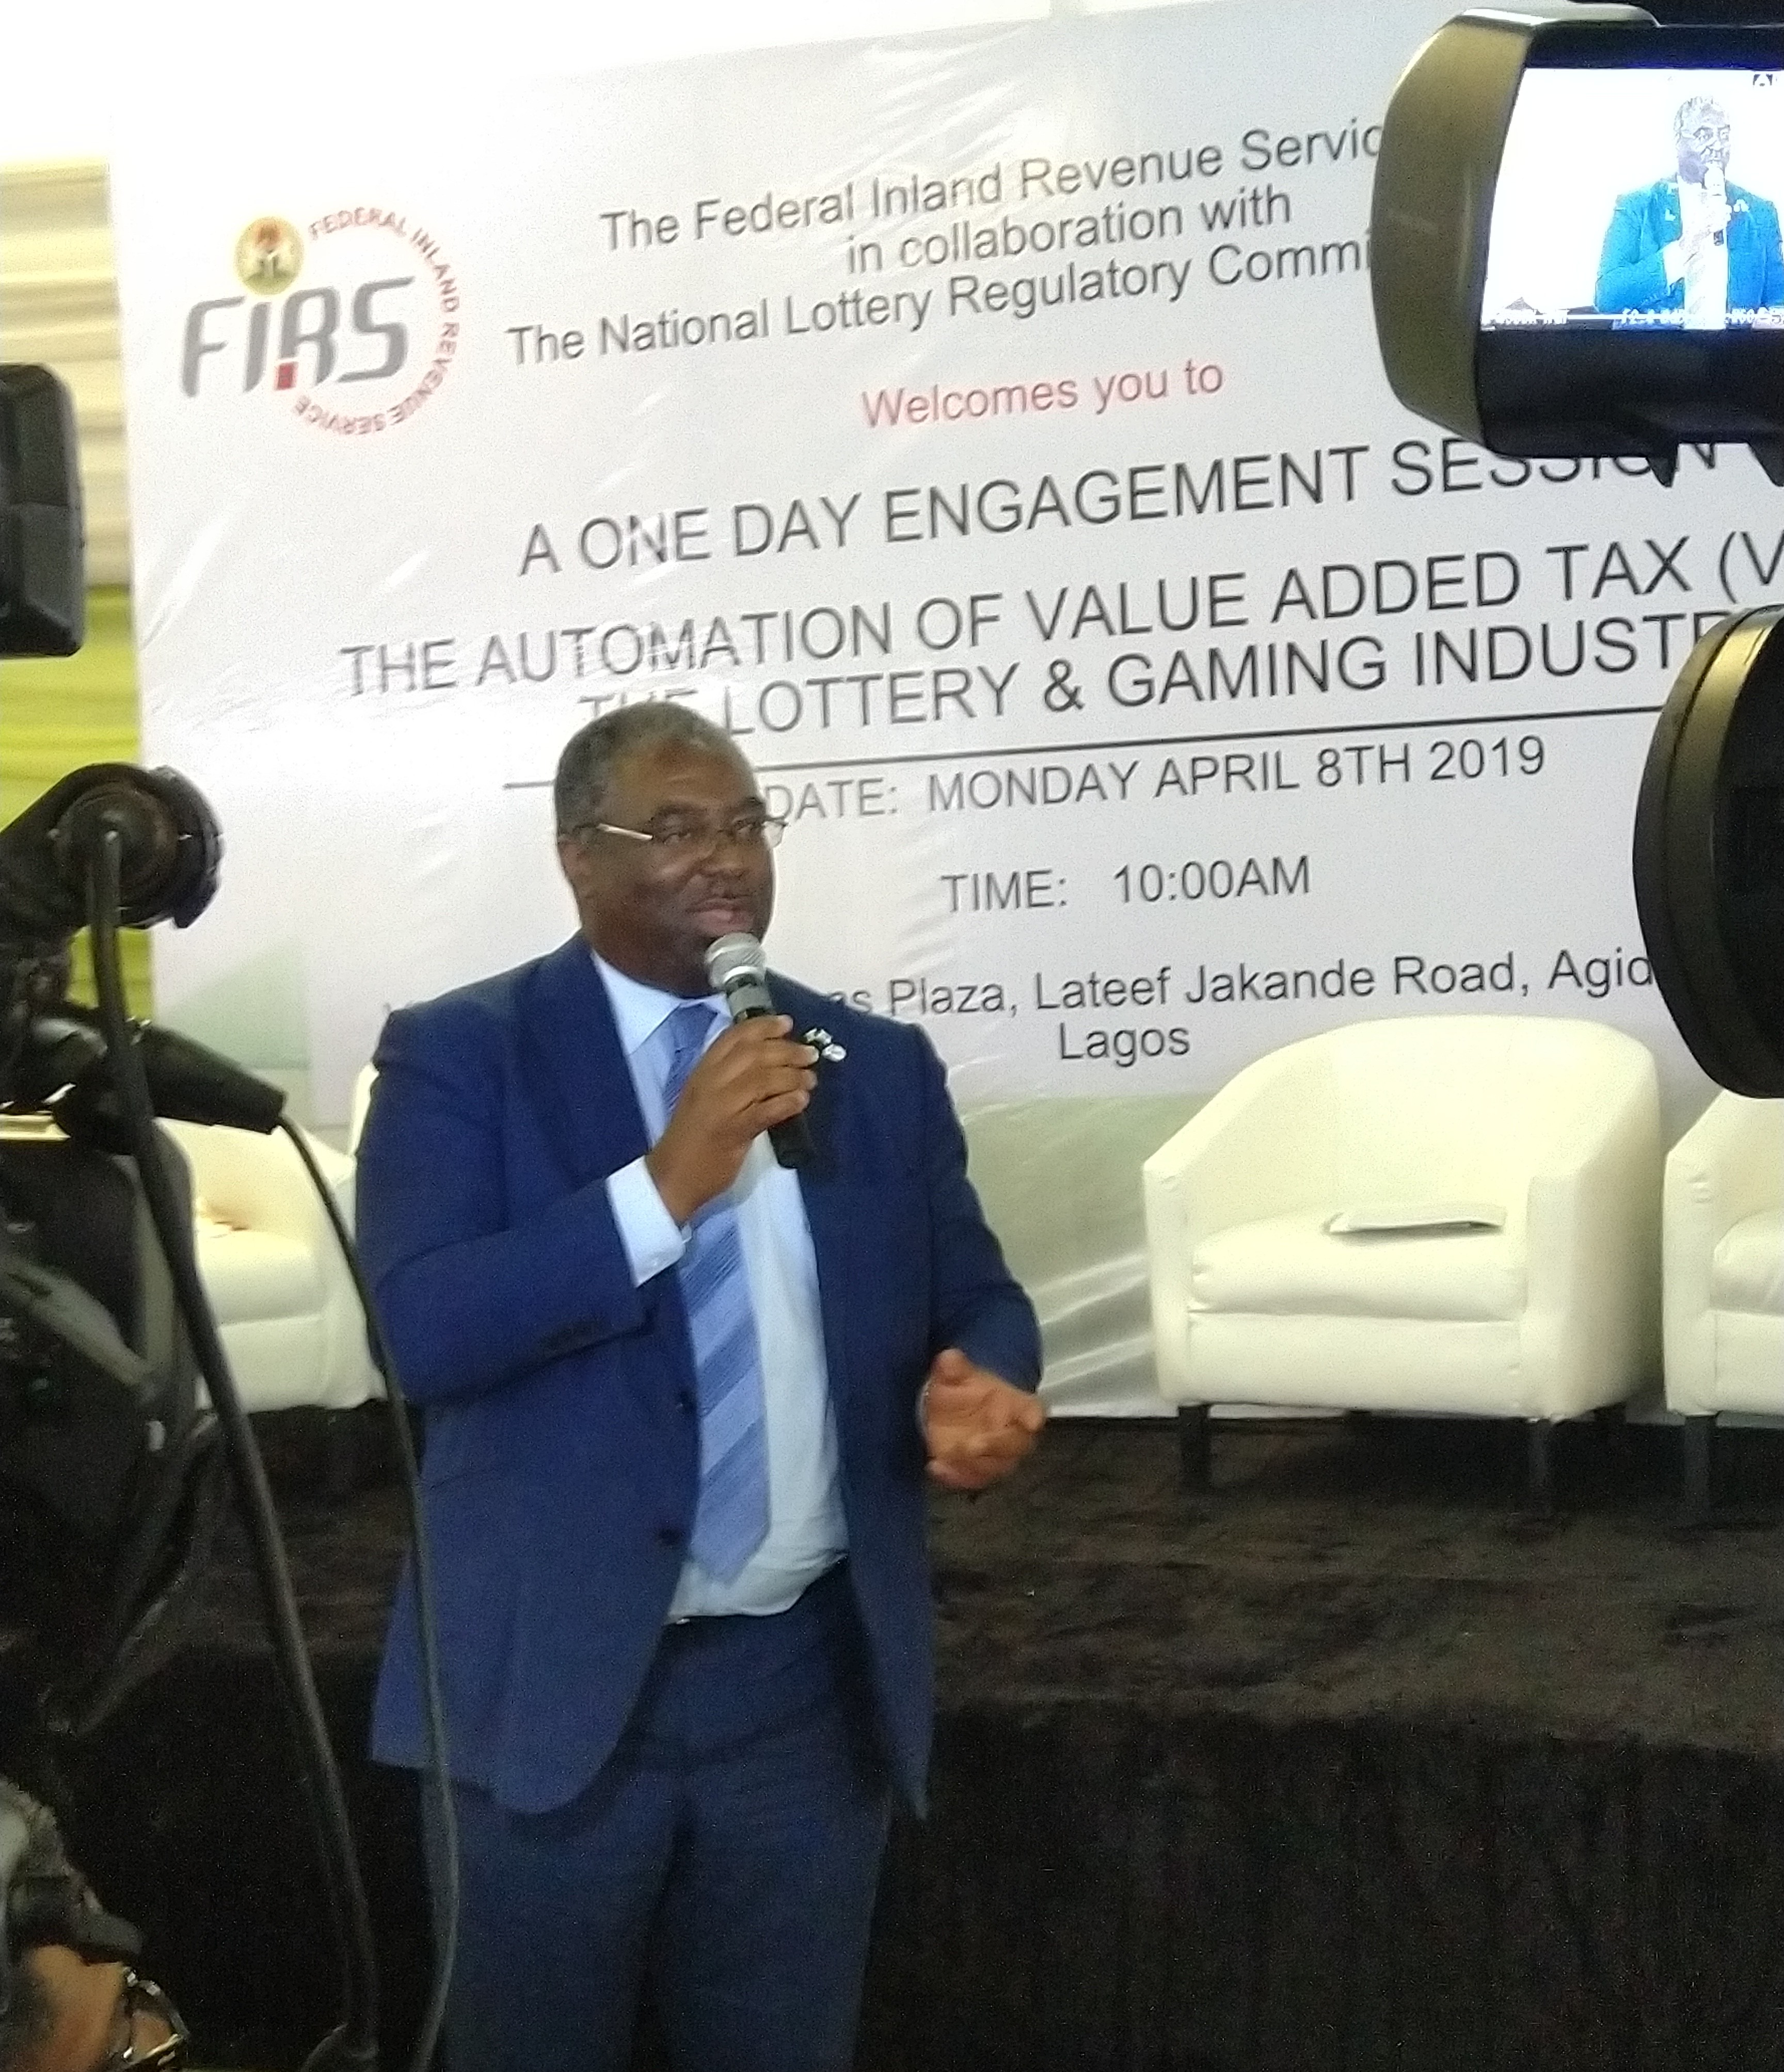 Lottery players in Nigeria will pay additional 5% to Govt. as VAT